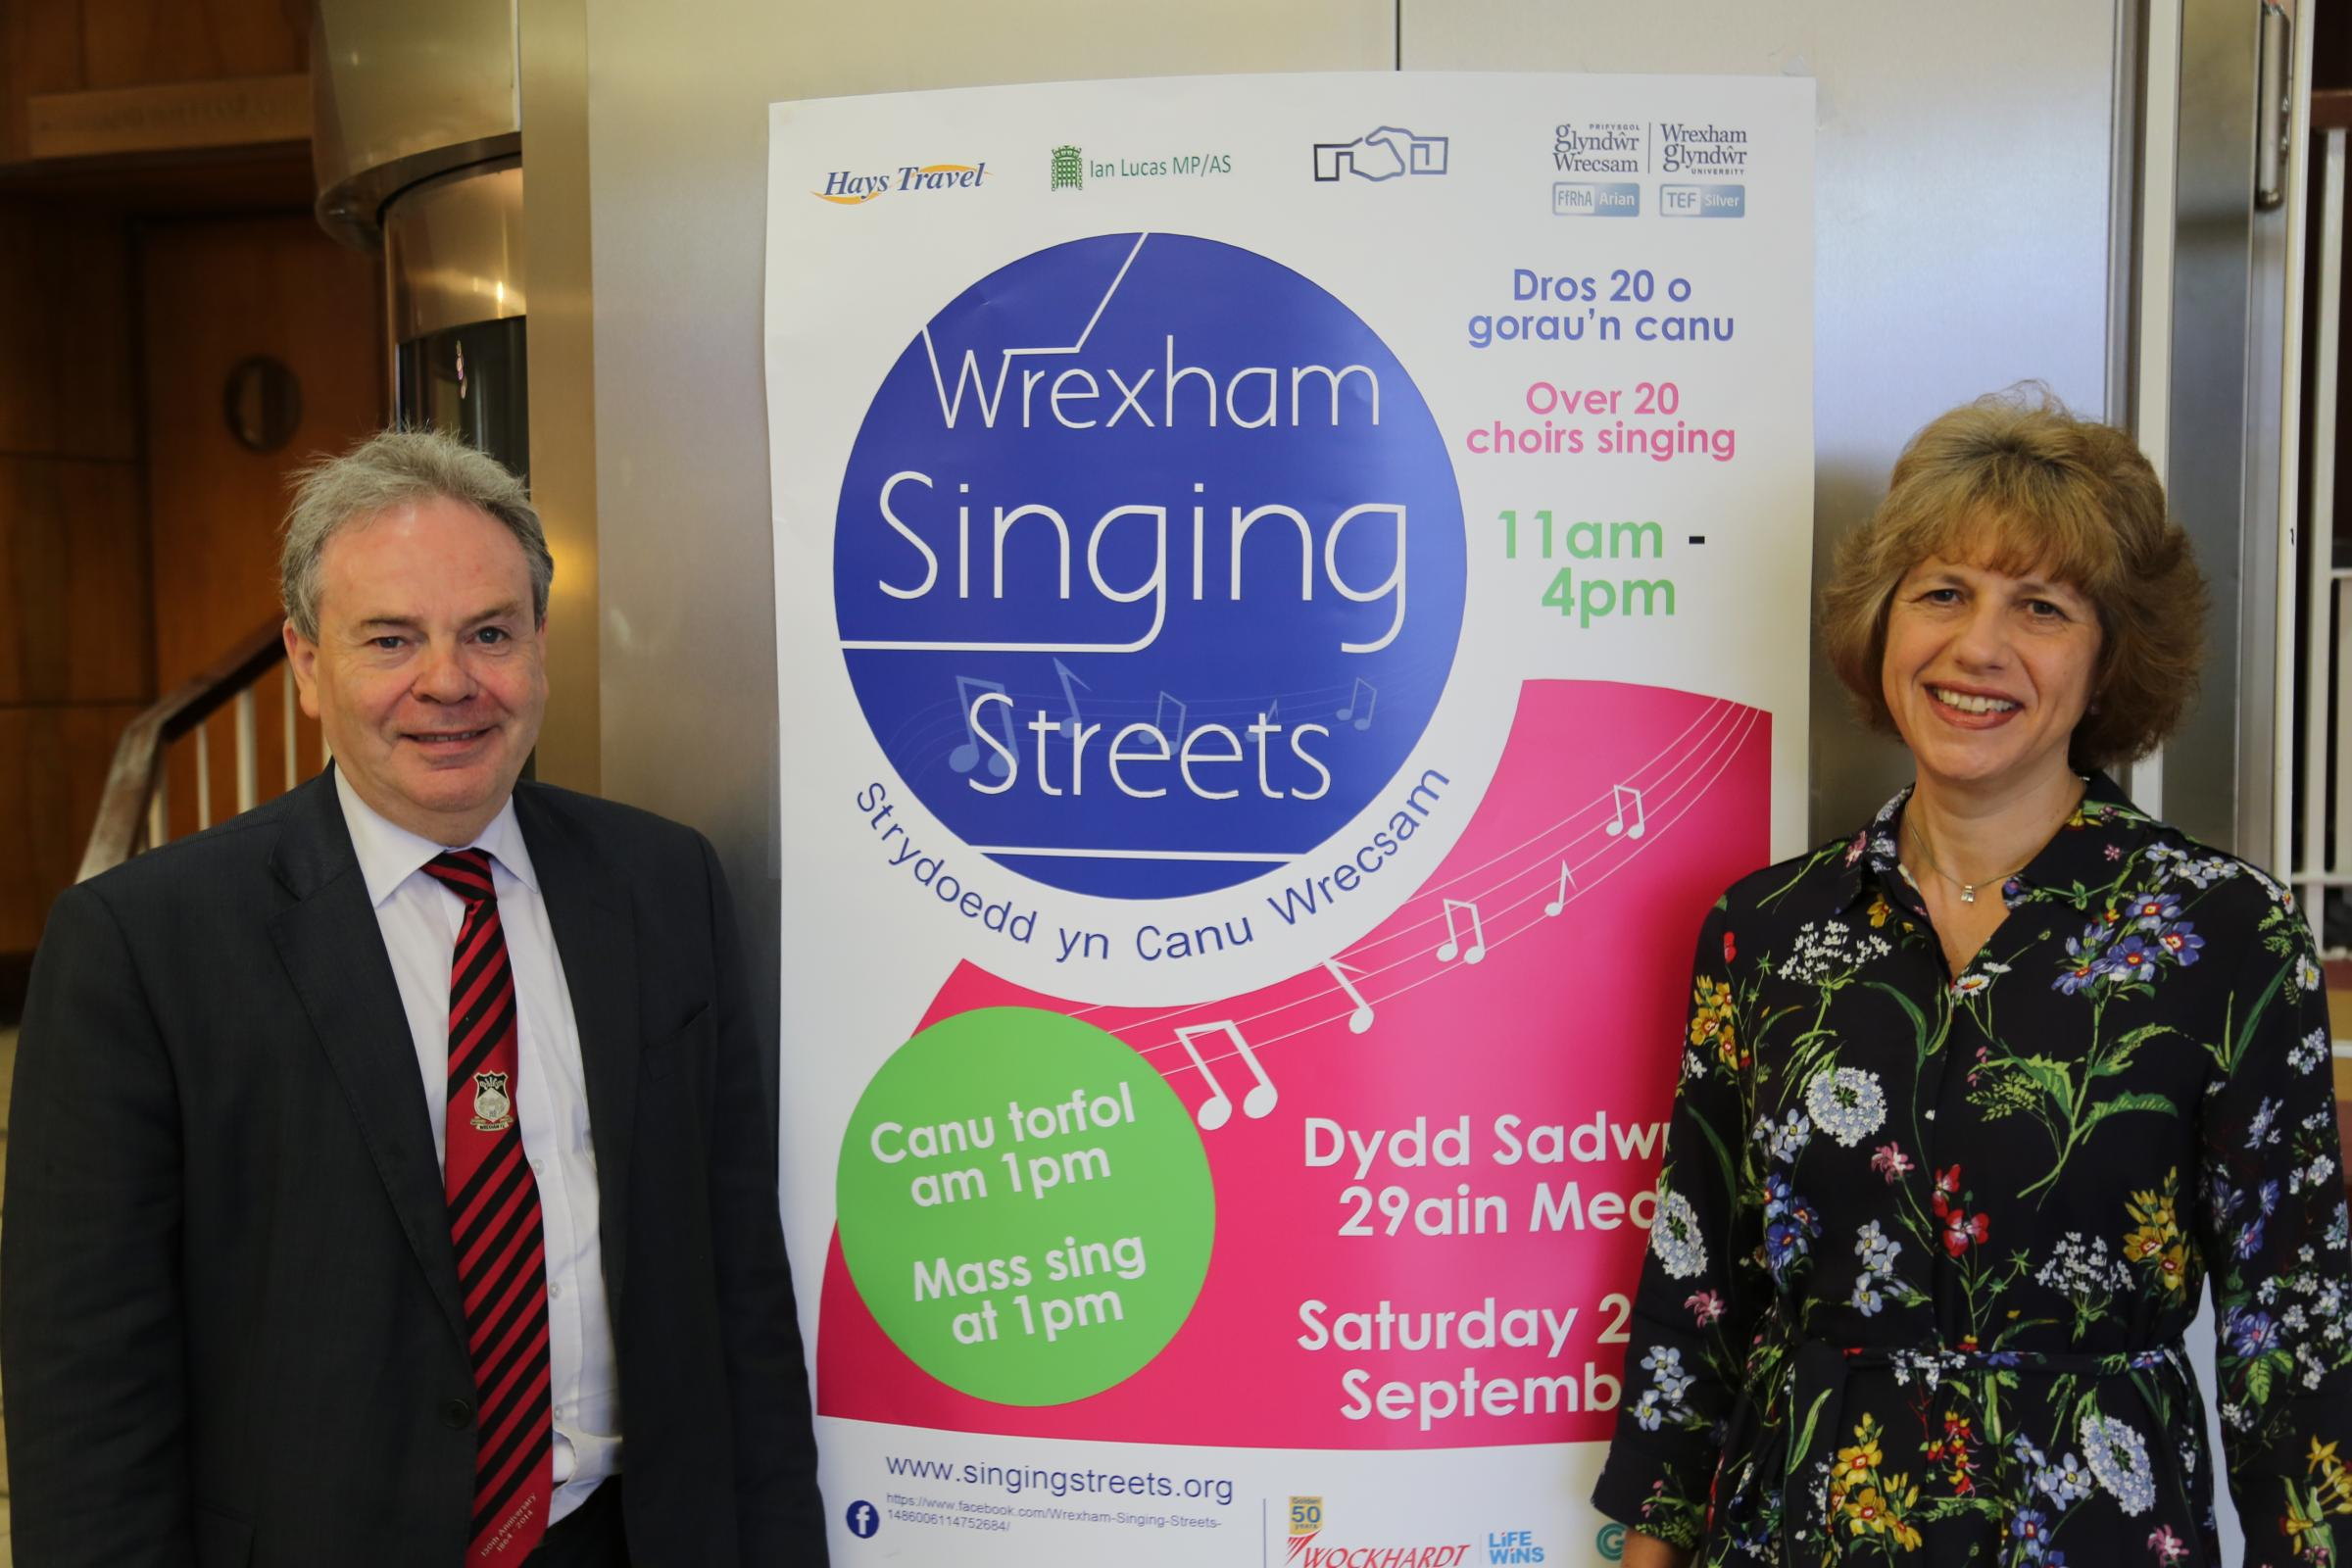 Ian Lucas, MP for Wrexham, and Professor Maria Hinfelaar, Wrexham Glynd?r University Vice-Chancellor, are inviting people to support this year's Wrexham Singing Streets festival.